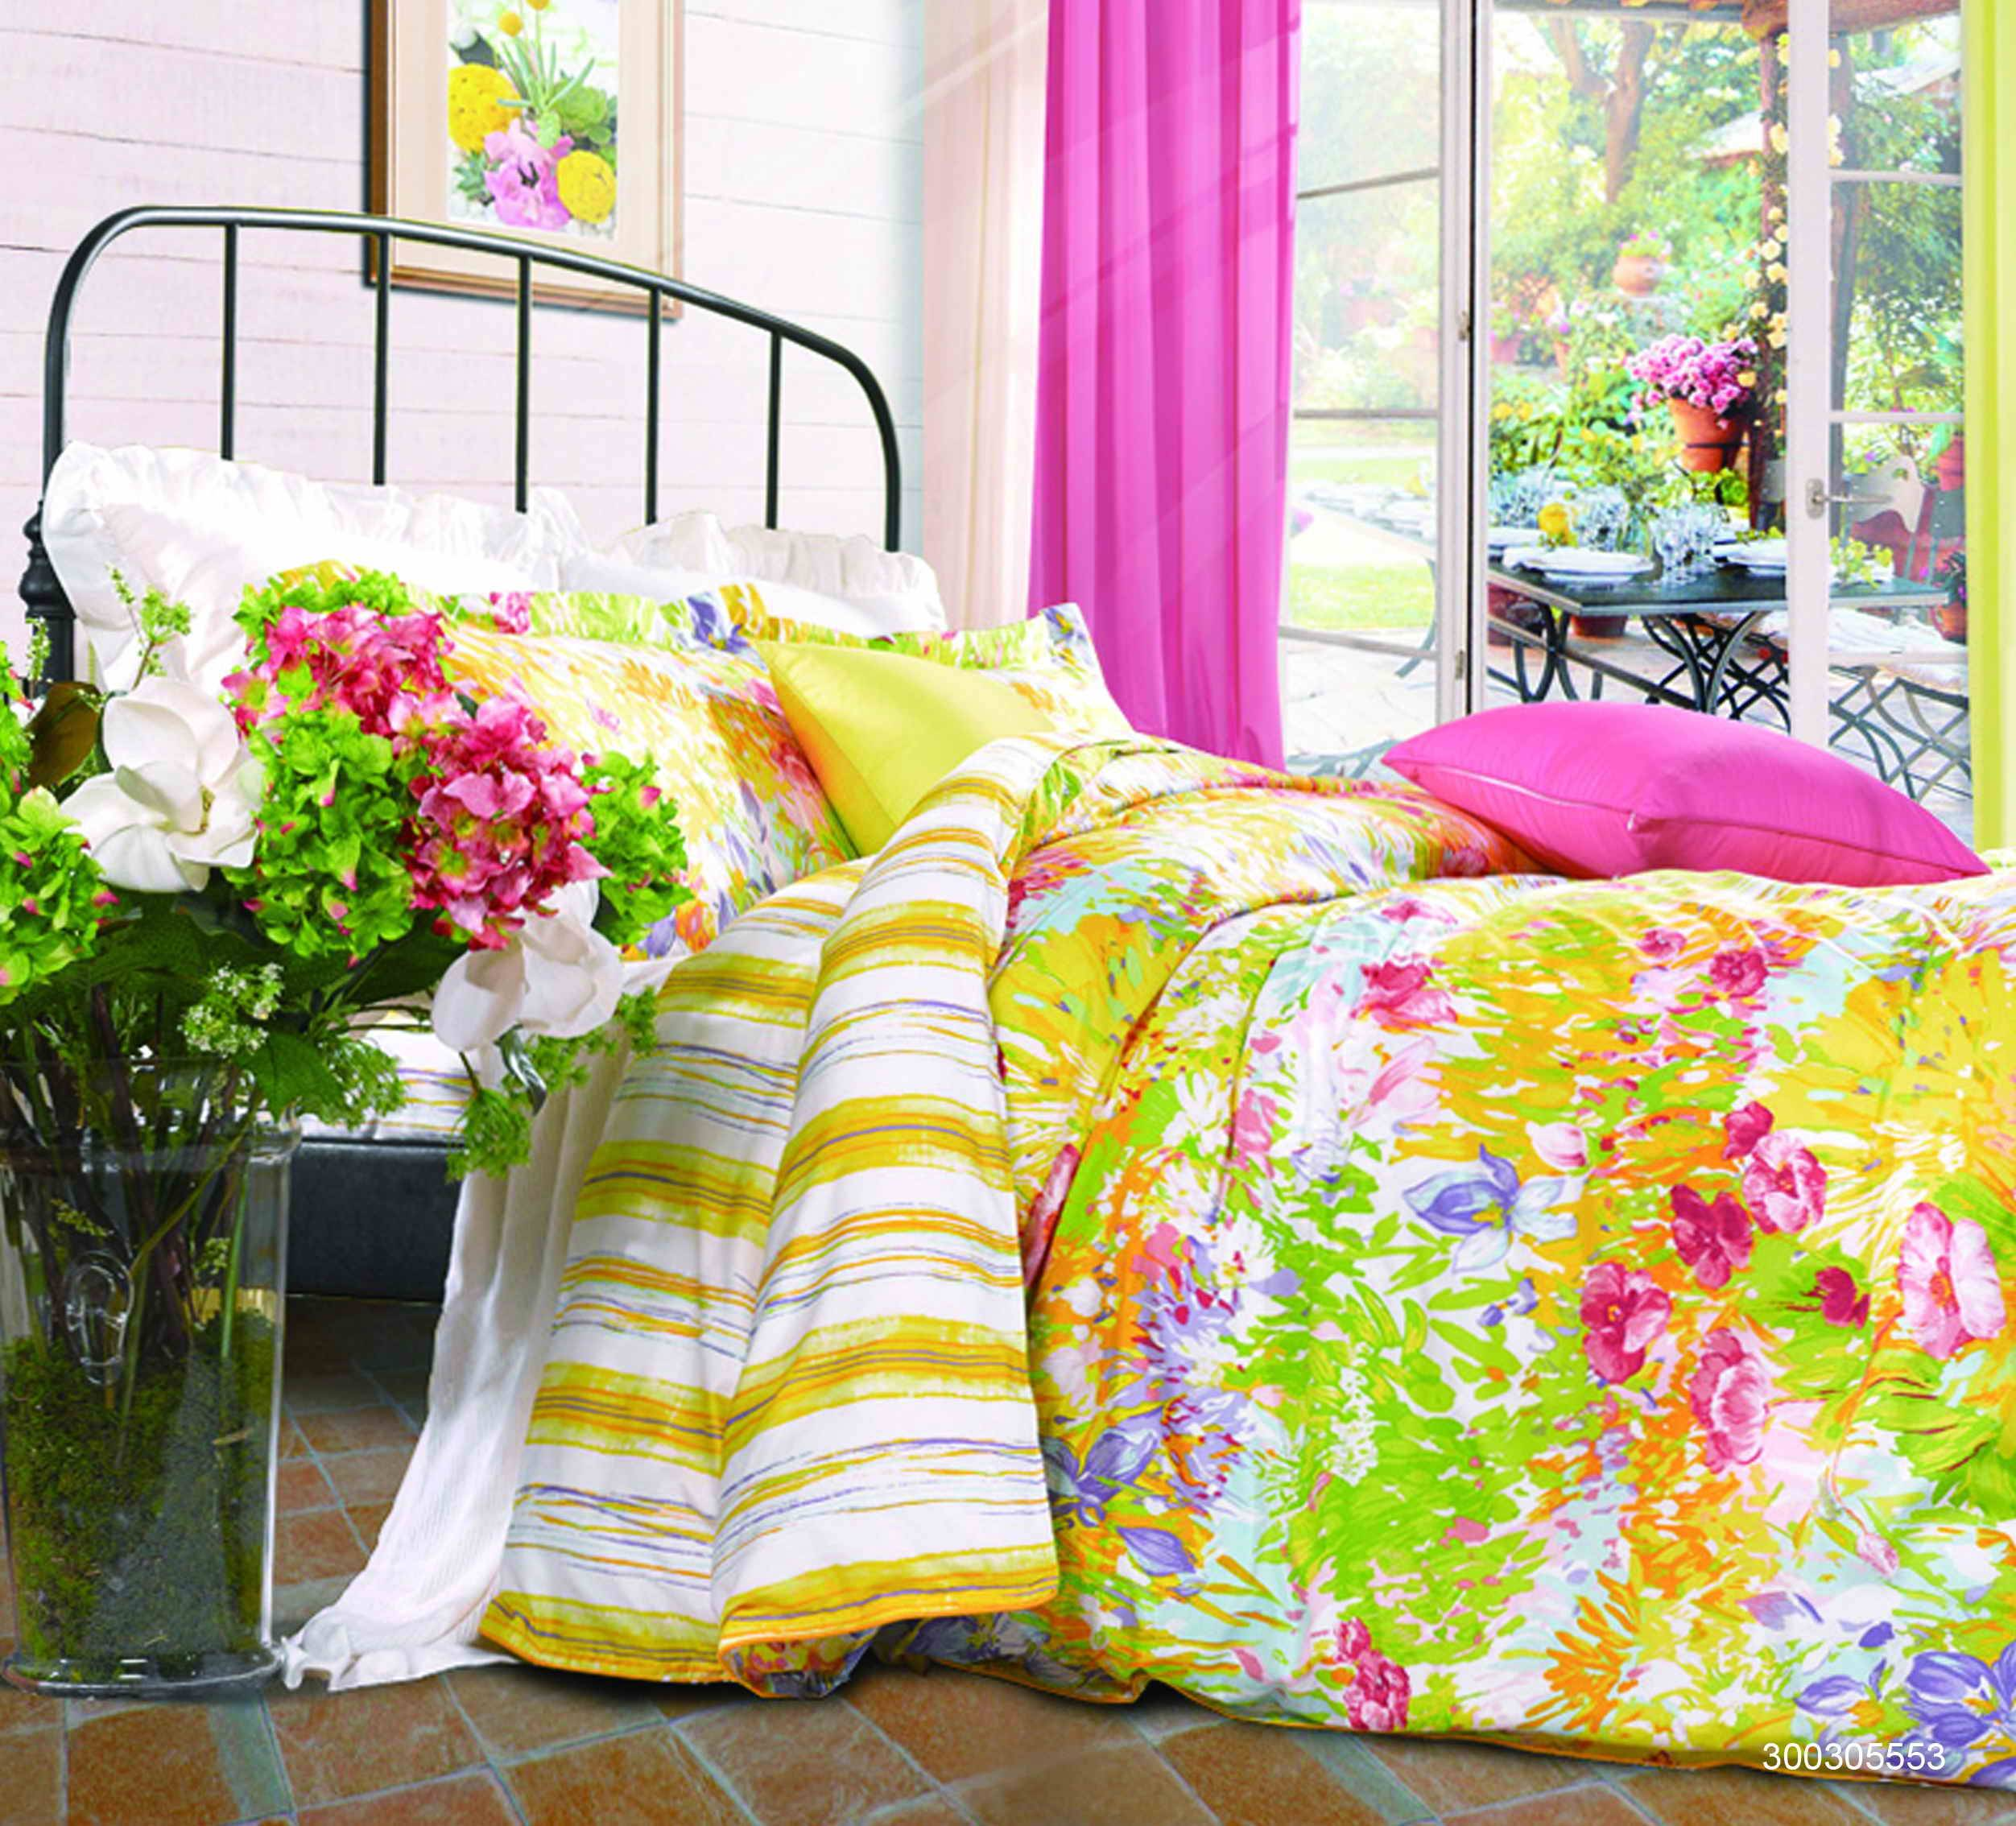 Fuanna Morning Flowers 3 Pieces Set Cotton Printed King Duvet Cover and Pillow Shams